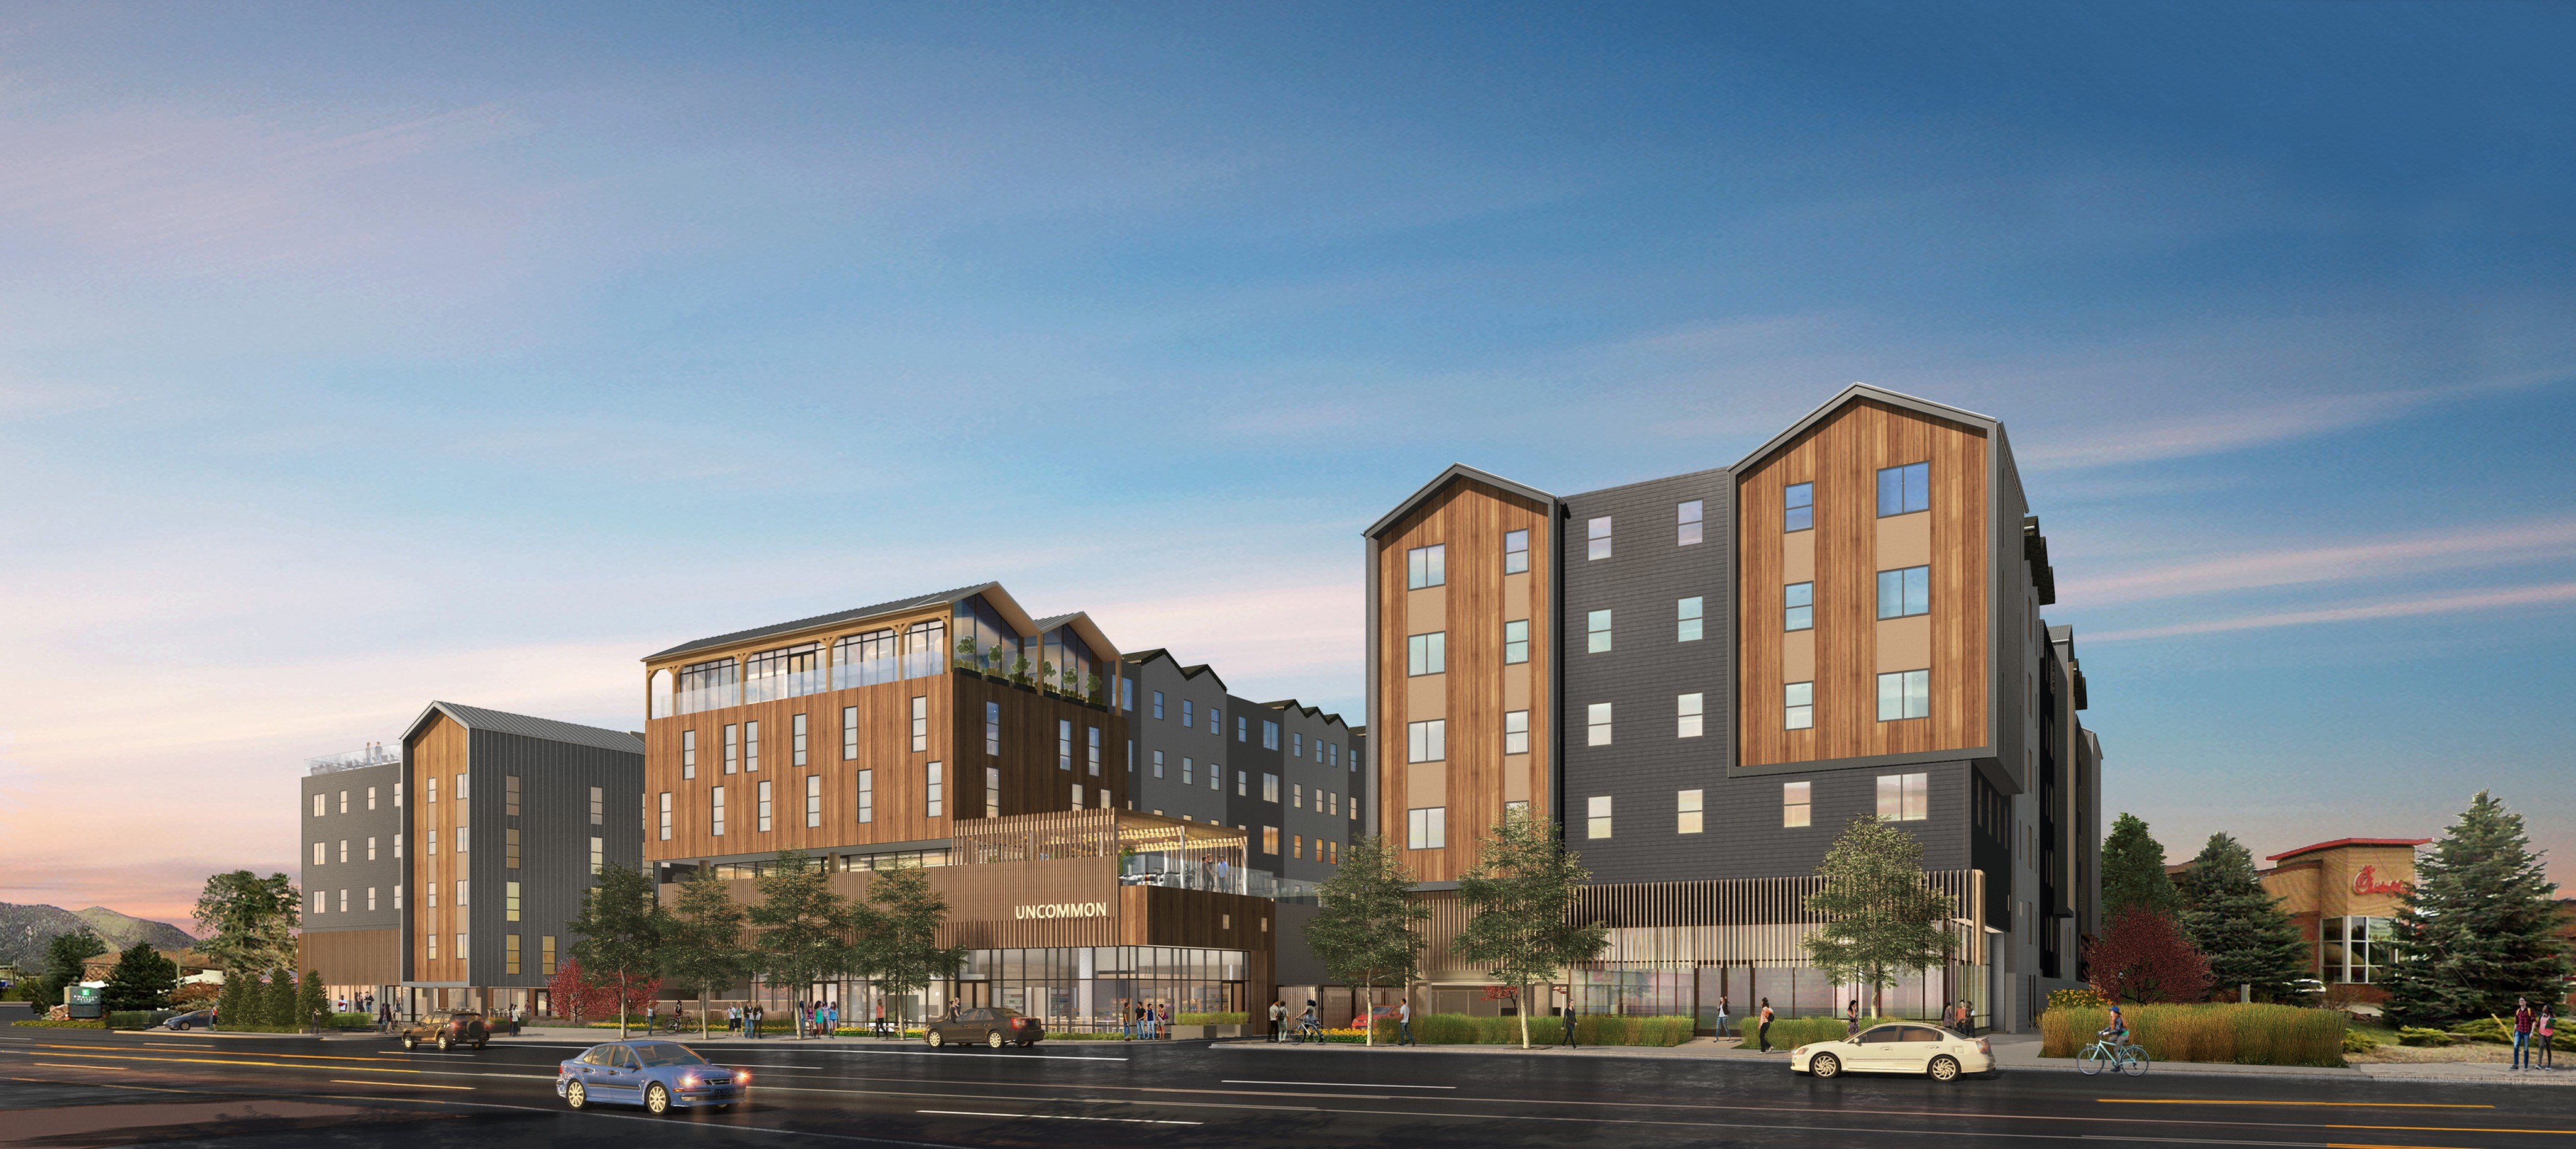 Apartments Near NAU Student Housing Coming 2021 - Uncommon Flagstaff for Northern Arizona University Students in Flagstaff, AZ